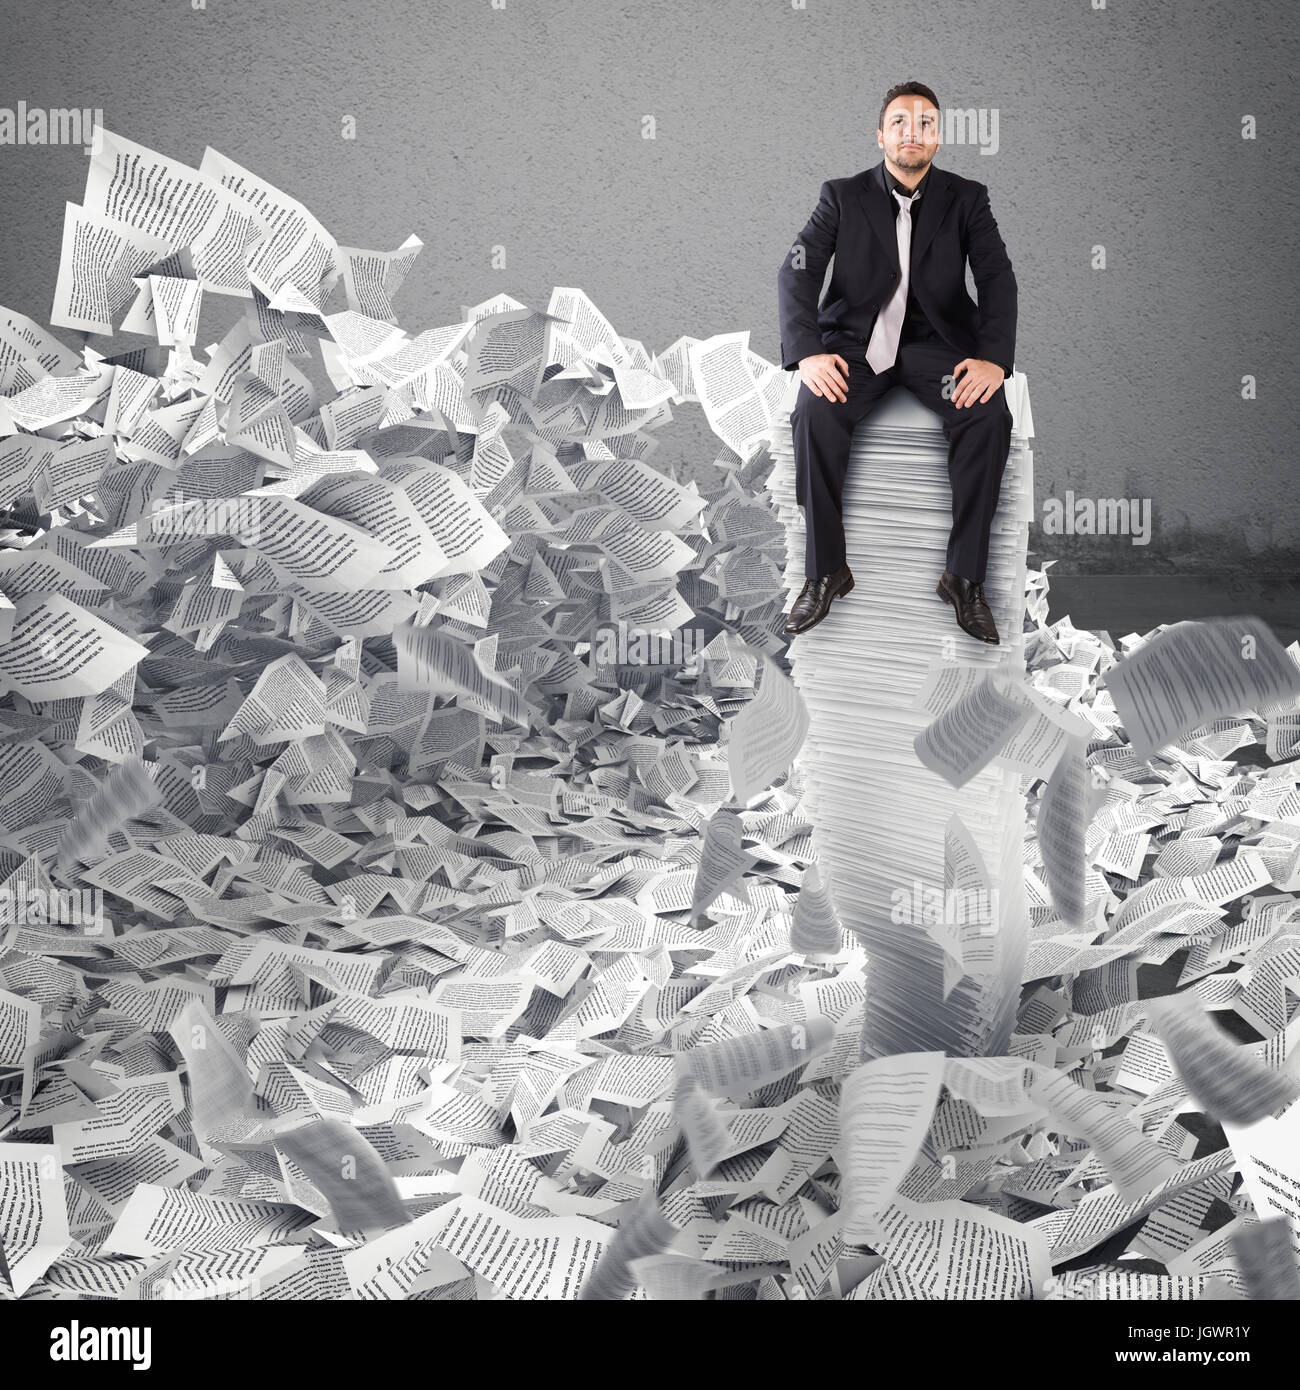 Businessman with paper sheet anywhere. Buried by bureaucracy concept. - Stock Image